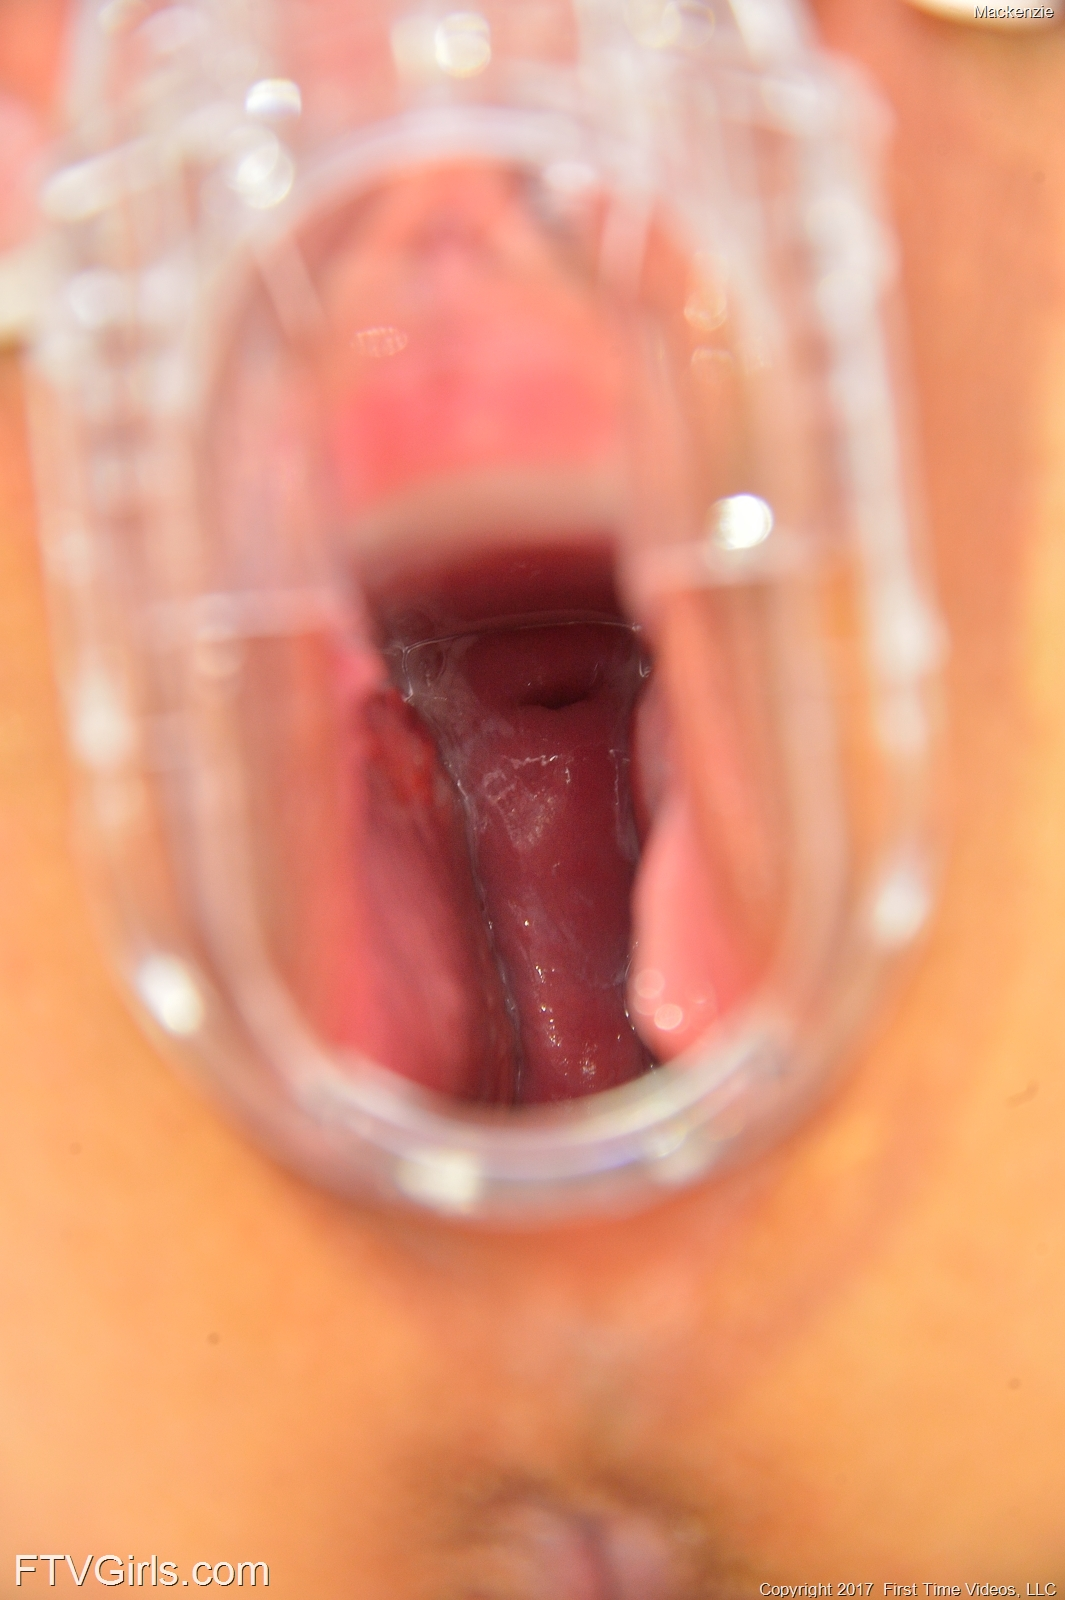 ftvgirls buttplug #6